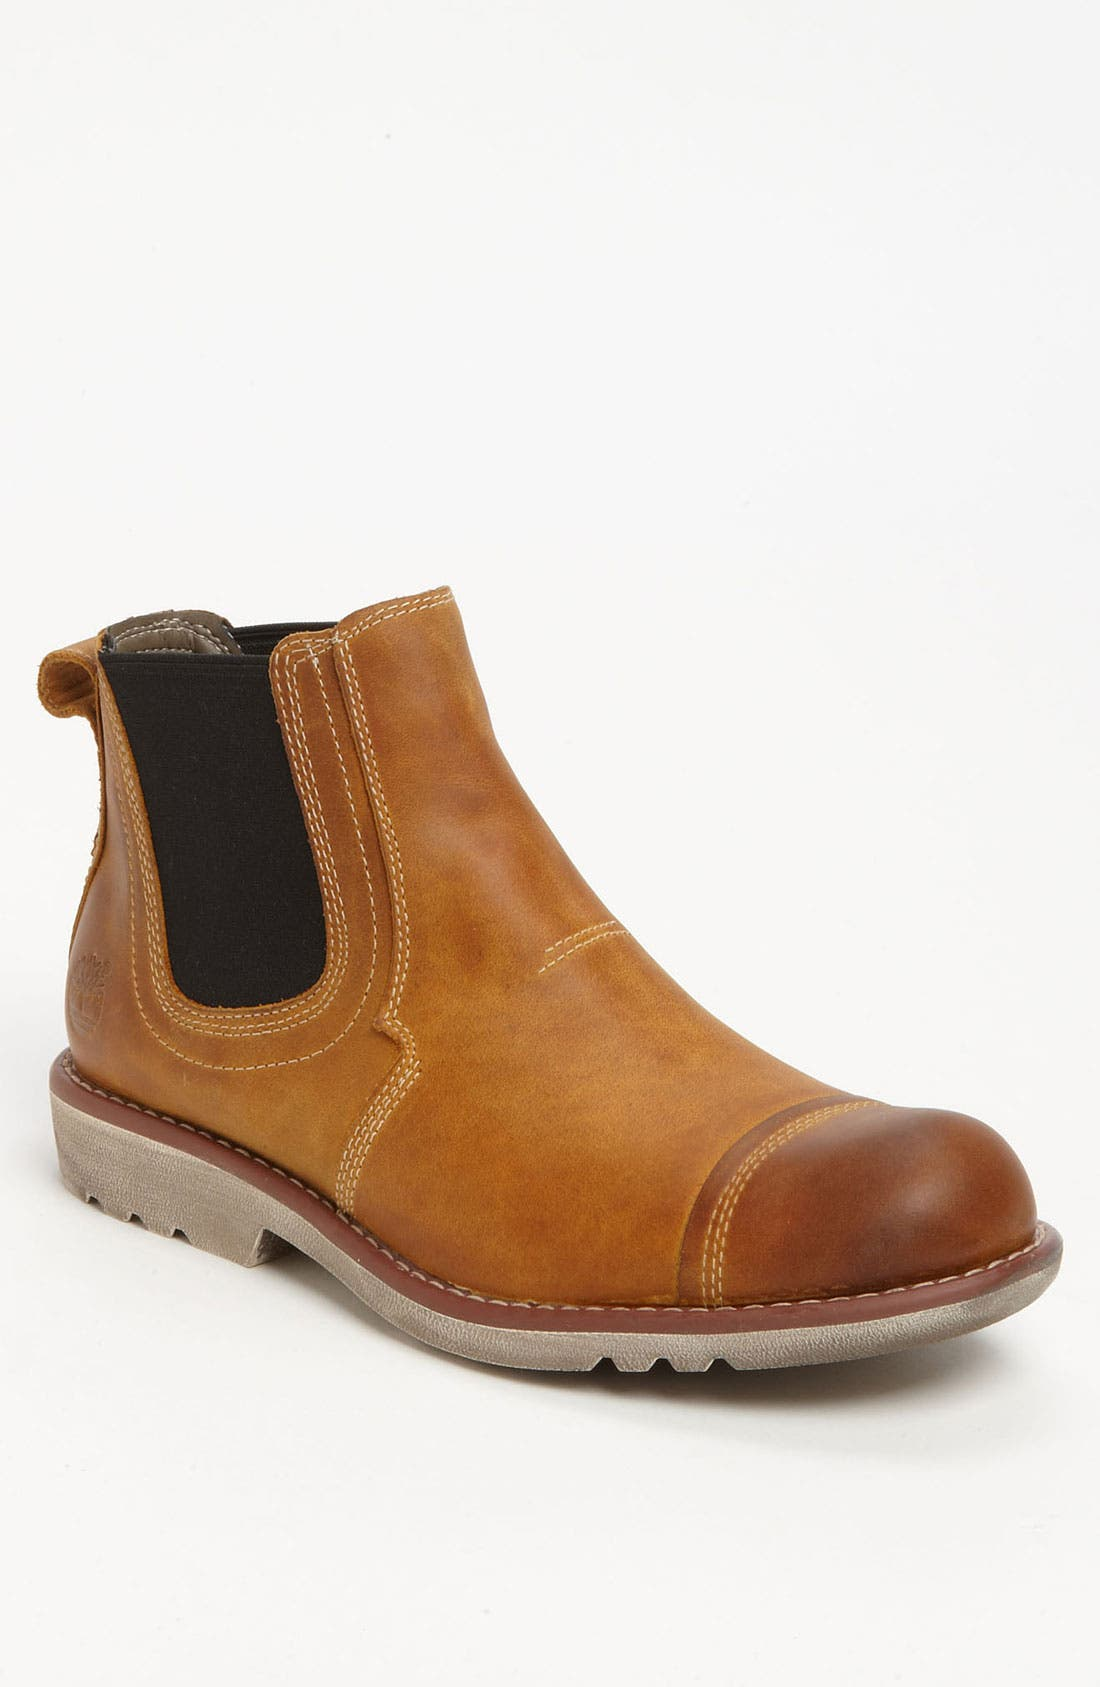 Alternate Image 1 Selected - Timberland 'City Escape' Chelsea Boot